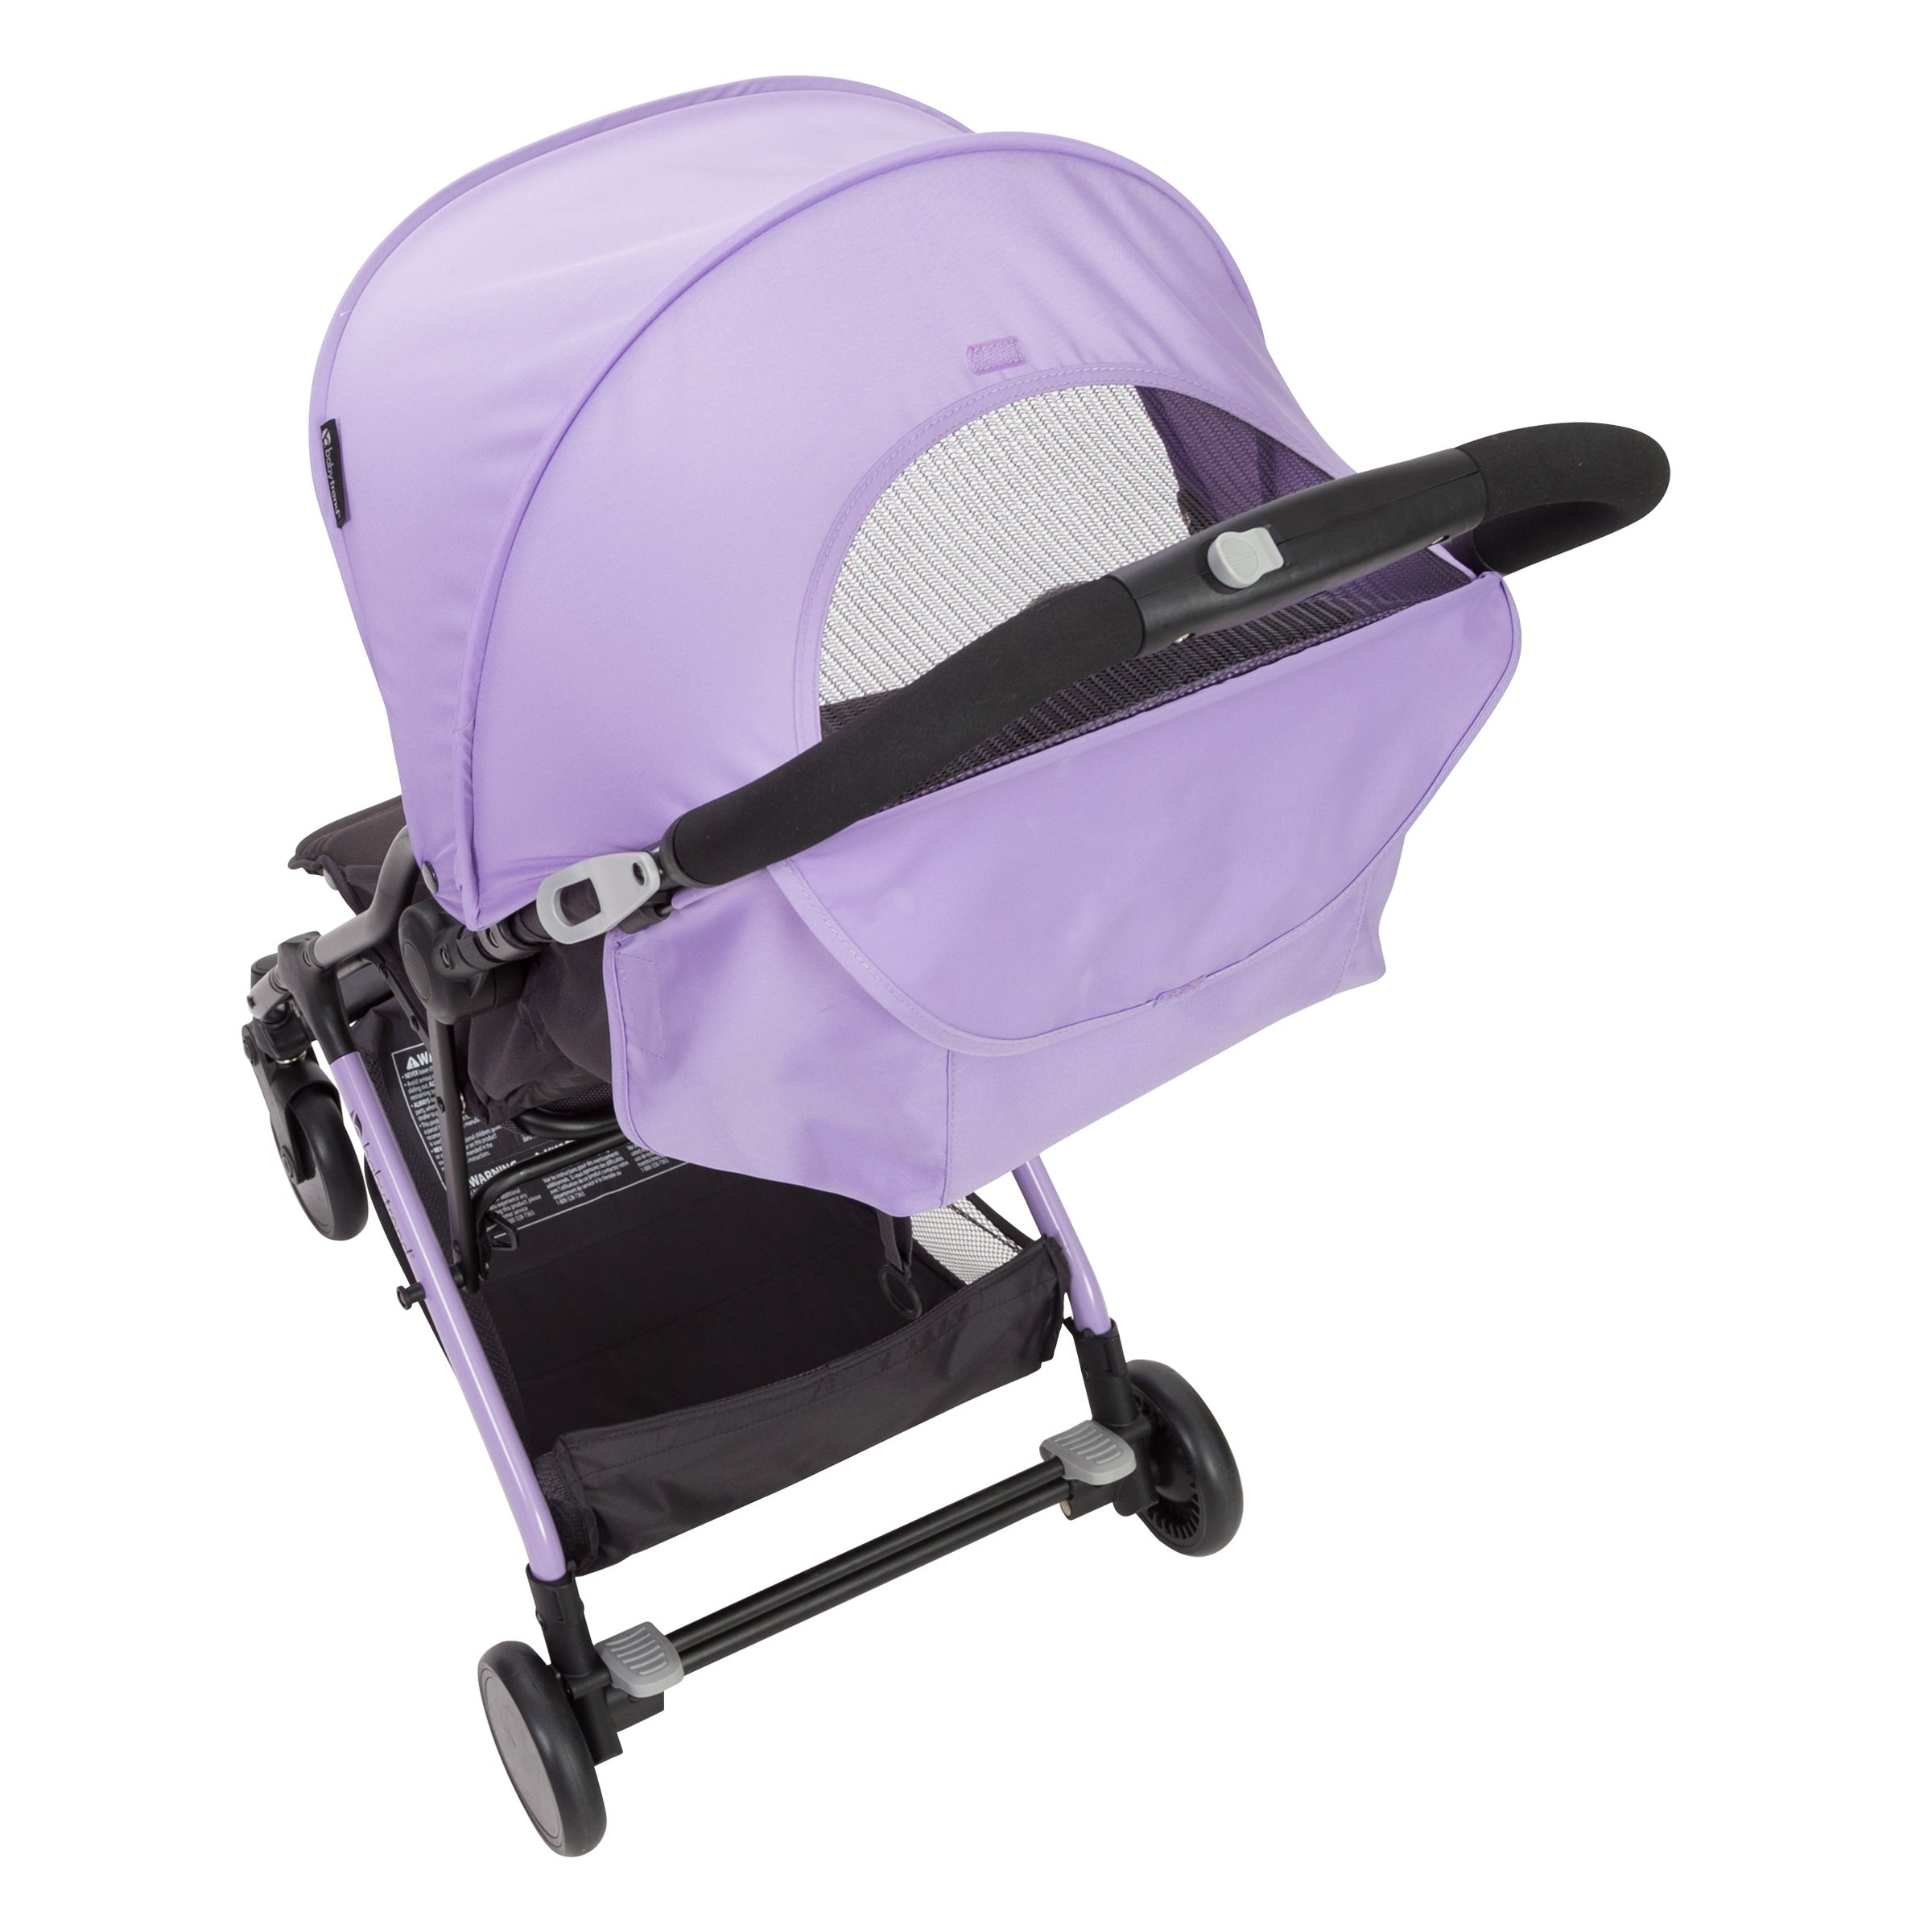 Baby Trend Tri-Fold Mini Stroller, Lilac by Baby Trend (Image #3)